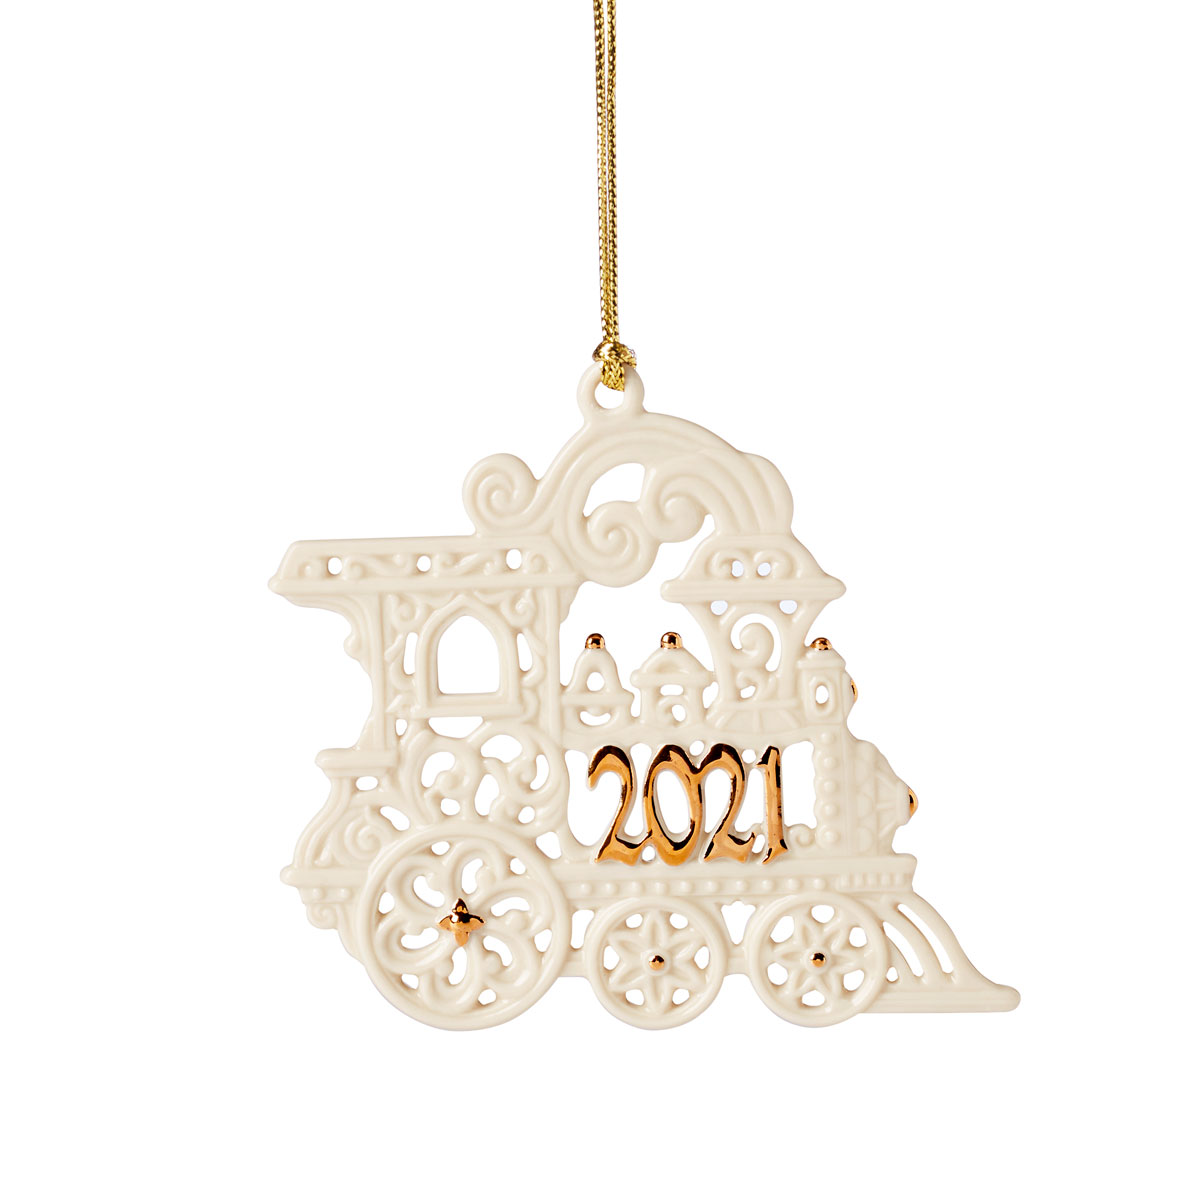 Lenox 2021 A Year To Remember Train Ornament